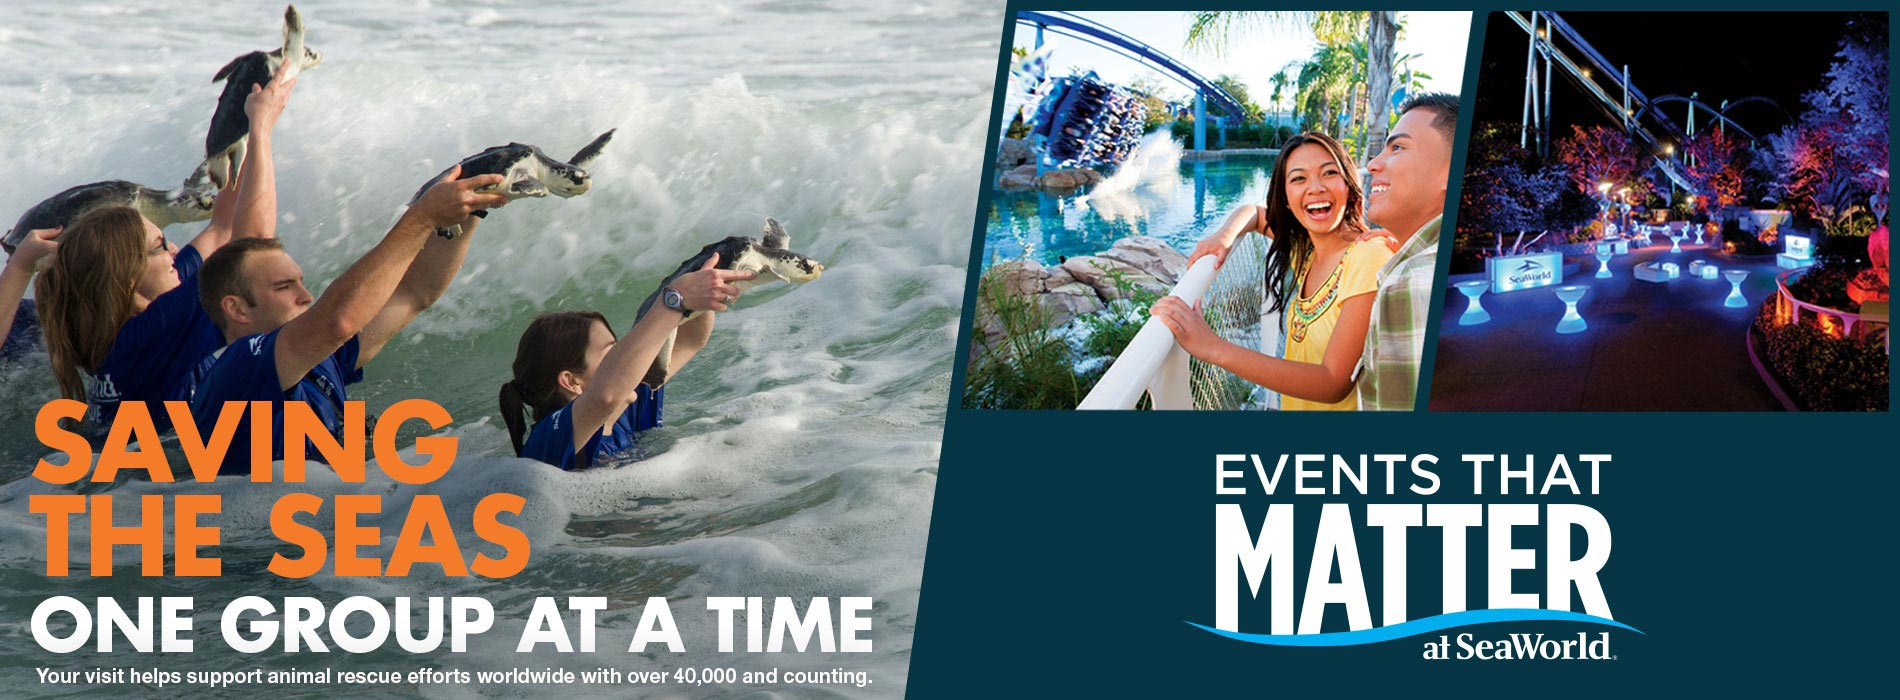 Events That Matter at SeaWorld